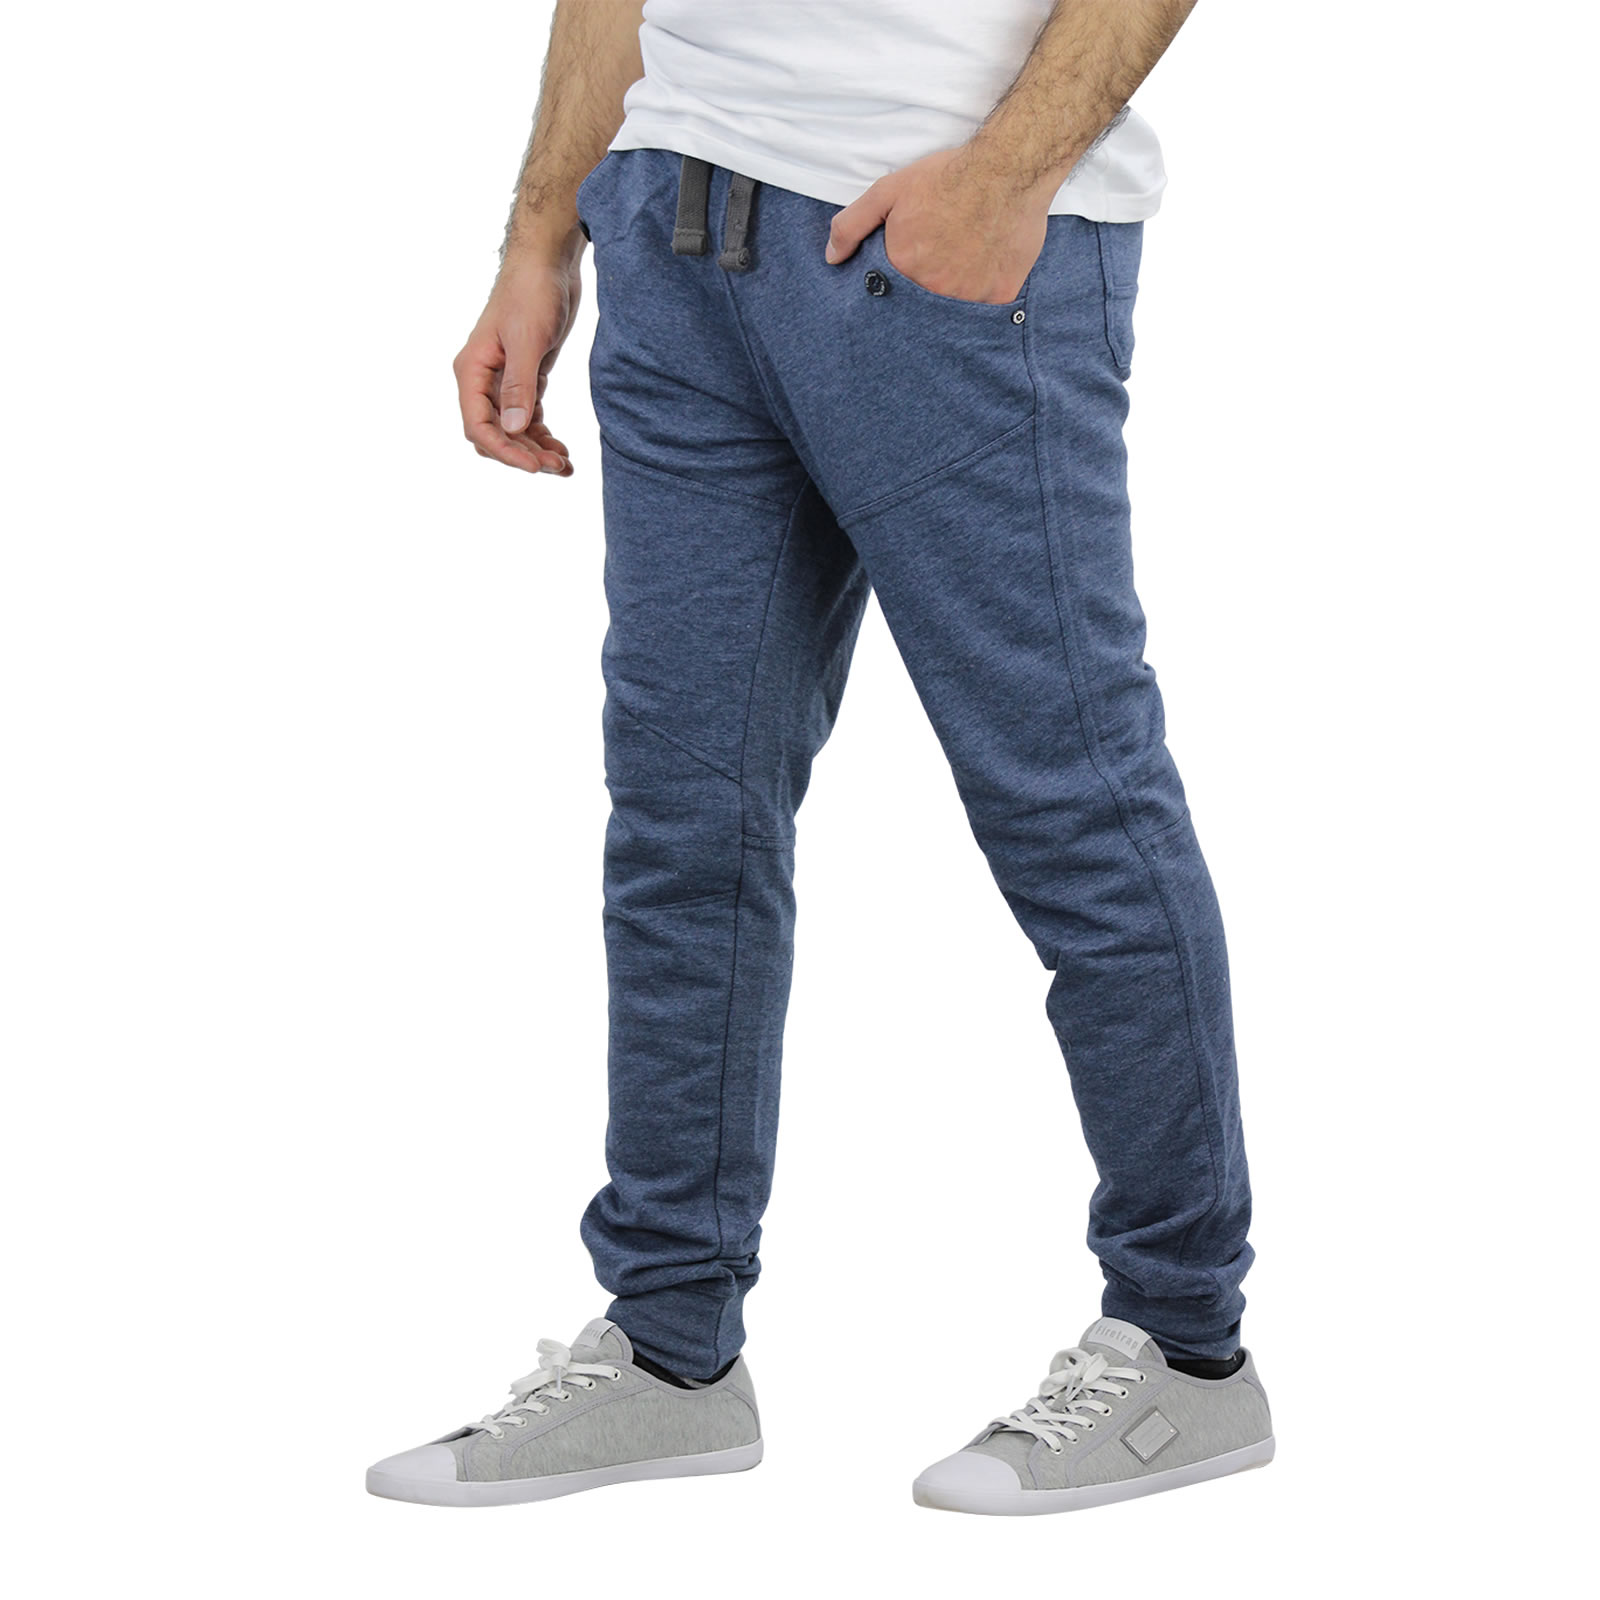 You searched for: slim fit joggers! Etsy is the home to thousands of handmade, vintage, and one-of-a-kind products and gifts related to your search. No matter what you're looking for or where you are in the world, our global marketplace of sellers can help you find unique and affordable options. Let's get started!